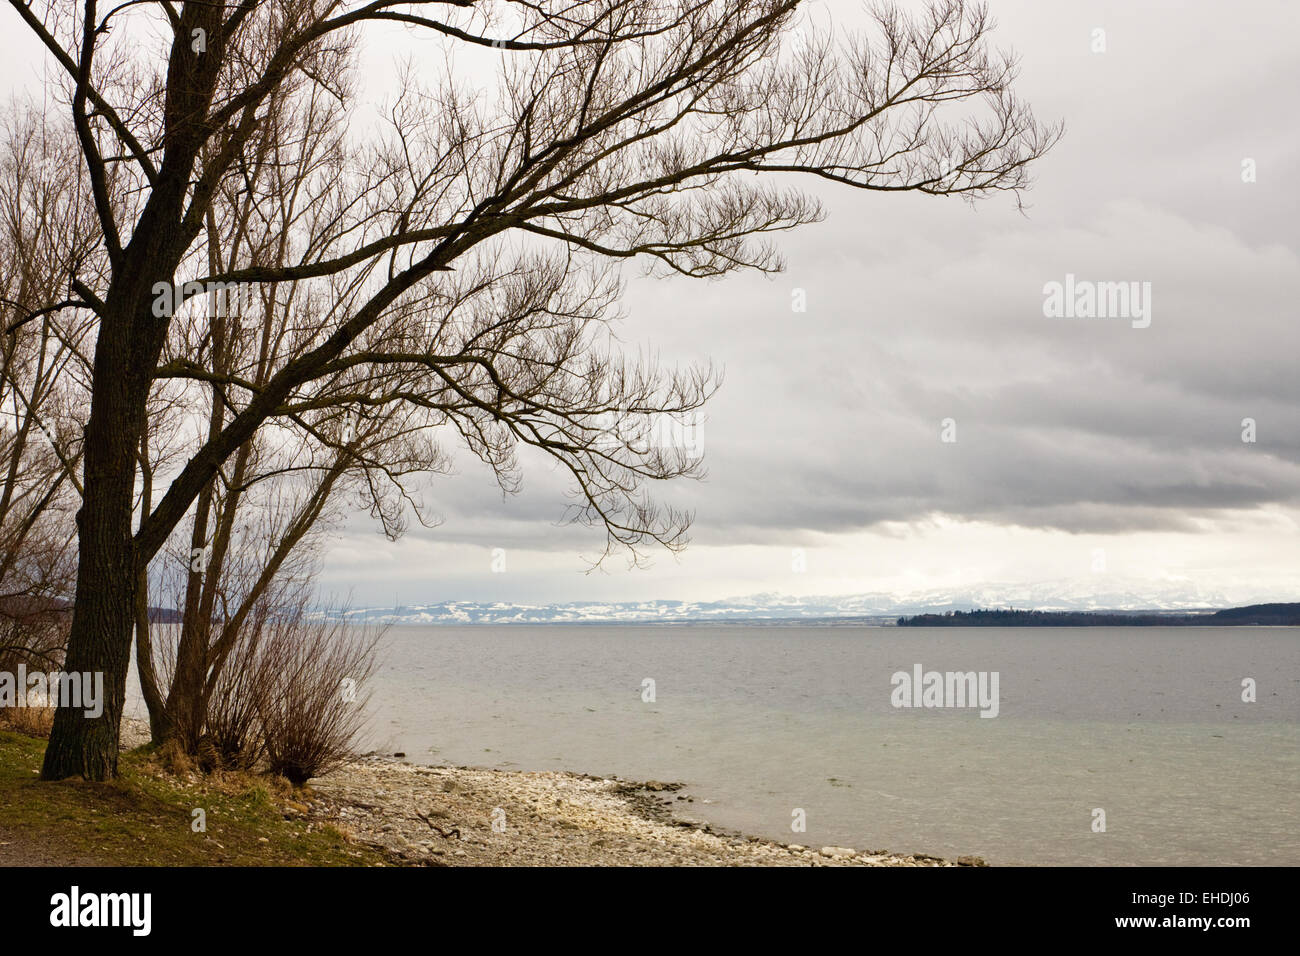 Bodensee, Deutschland, Lake Constance, Germany - Stock Image